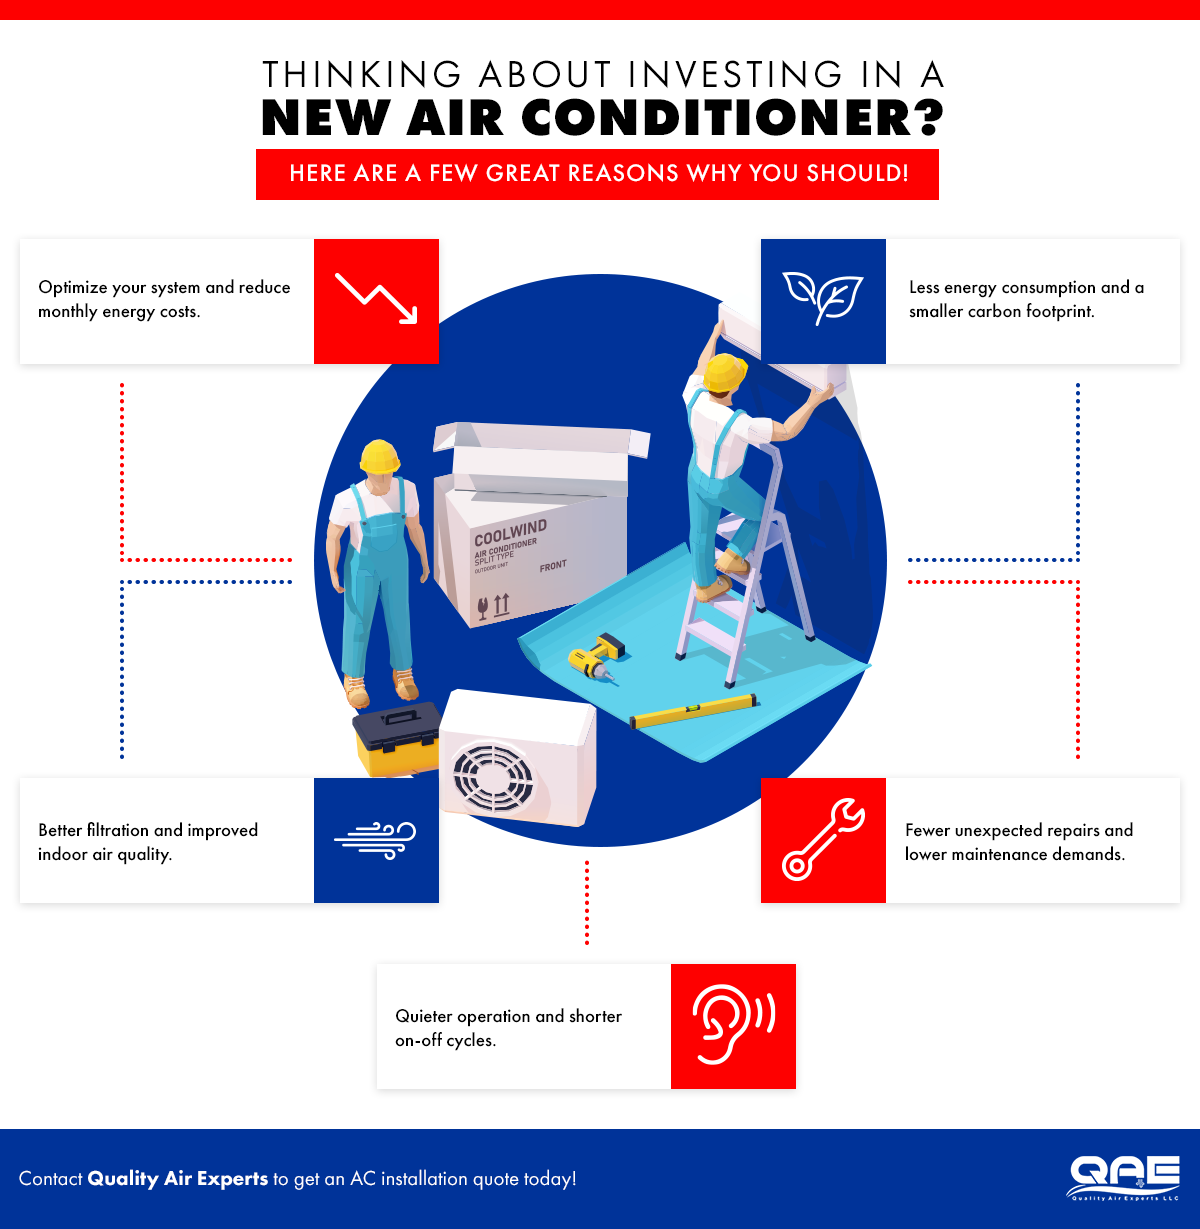 Thinking About Investing in a New Air Conditioner - Infographic.png